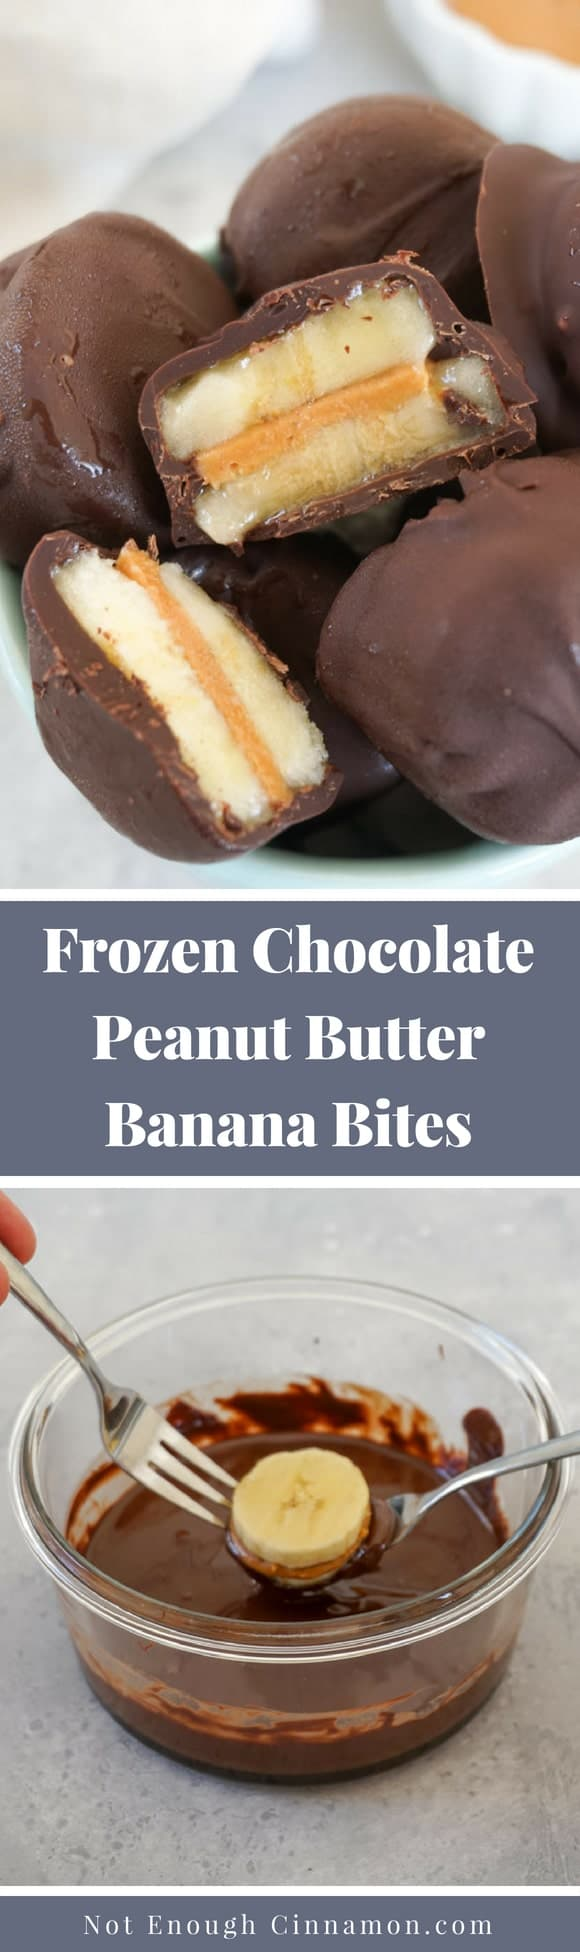 You only need three ingredients to make these delicious healthy frozen chocolate peanut butter banana bites. They are super easy to make and always a hit with everyone!